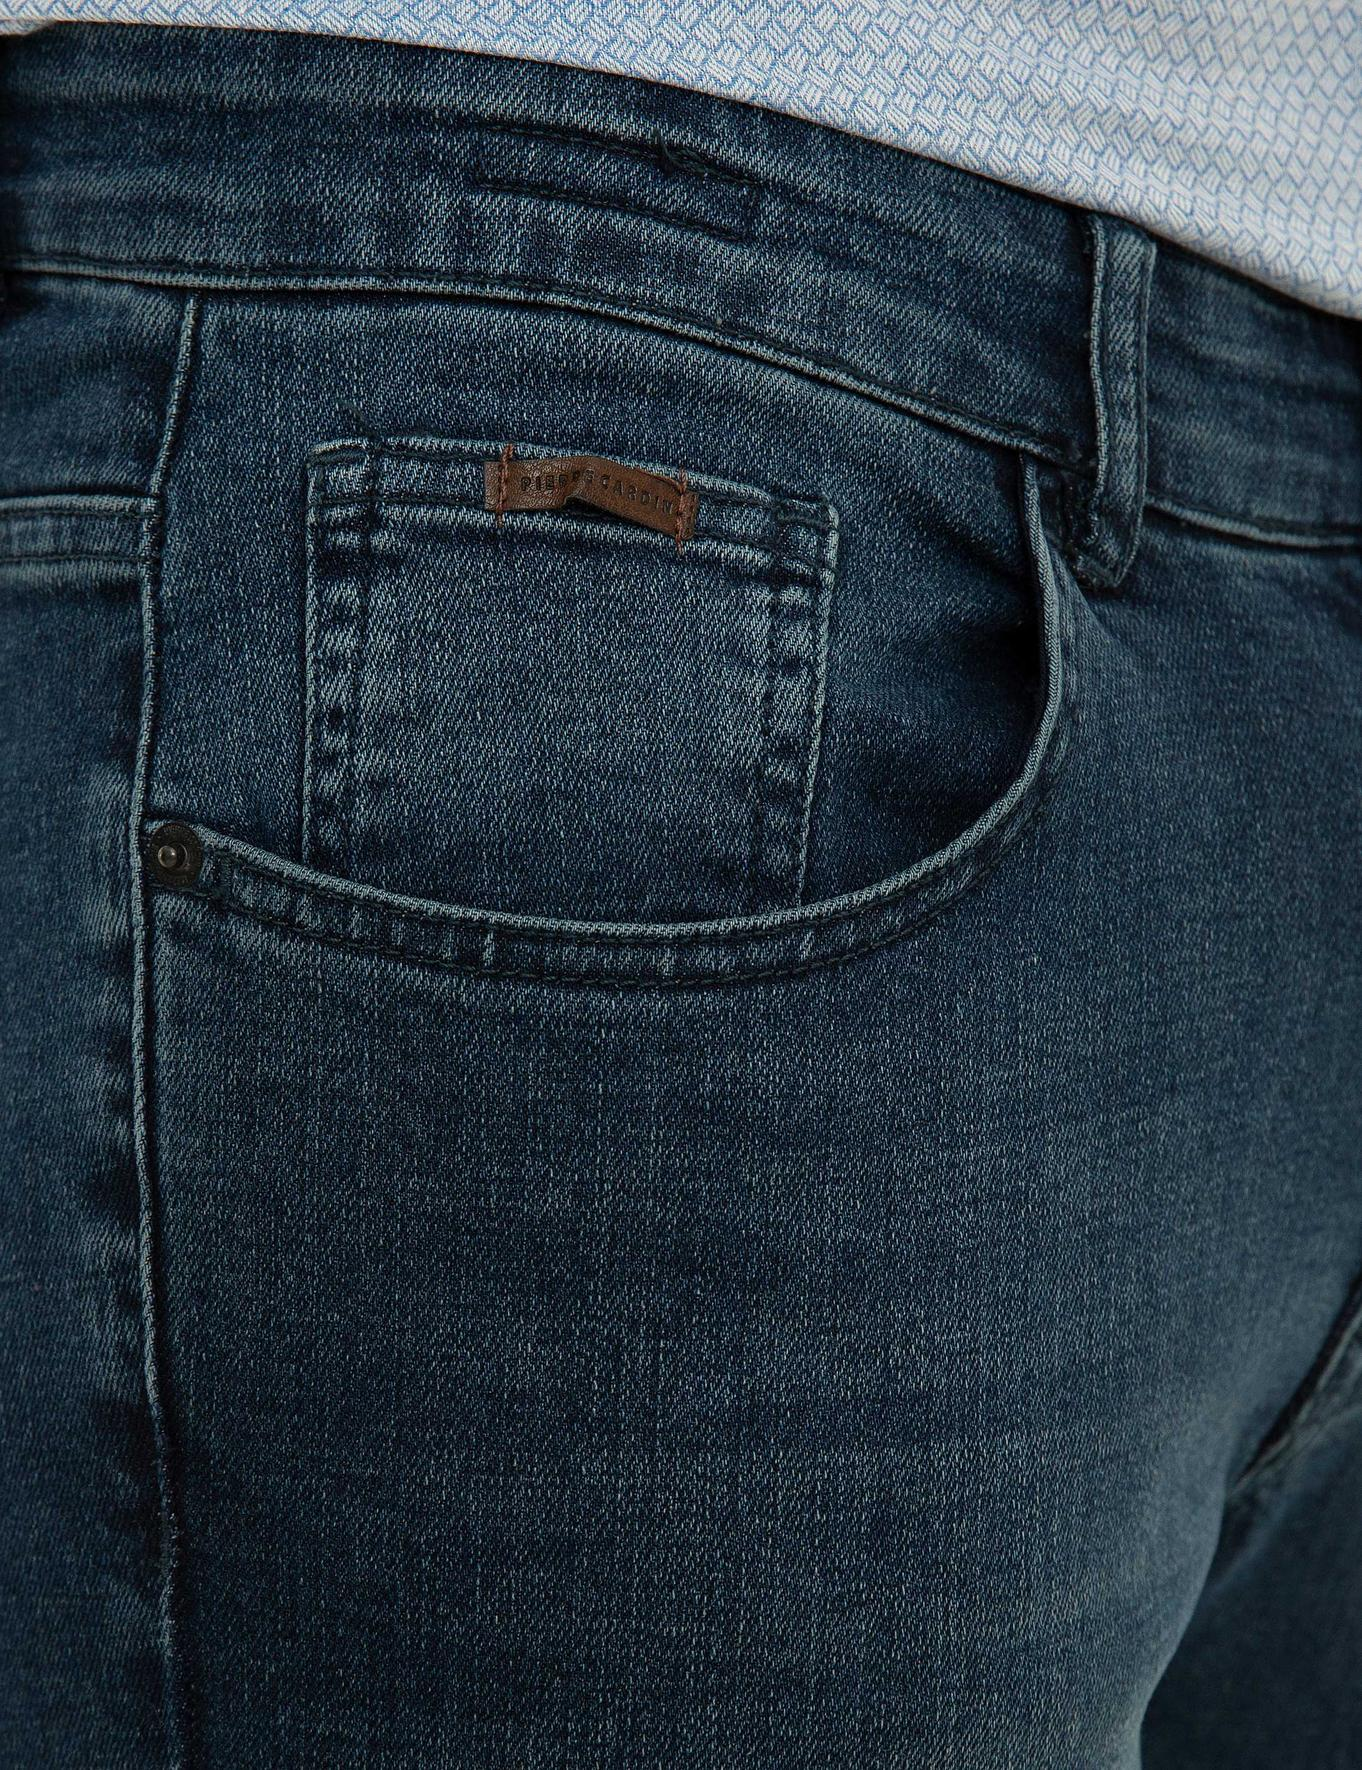 Koyu Mavi Slim Fit Denim Pantolon